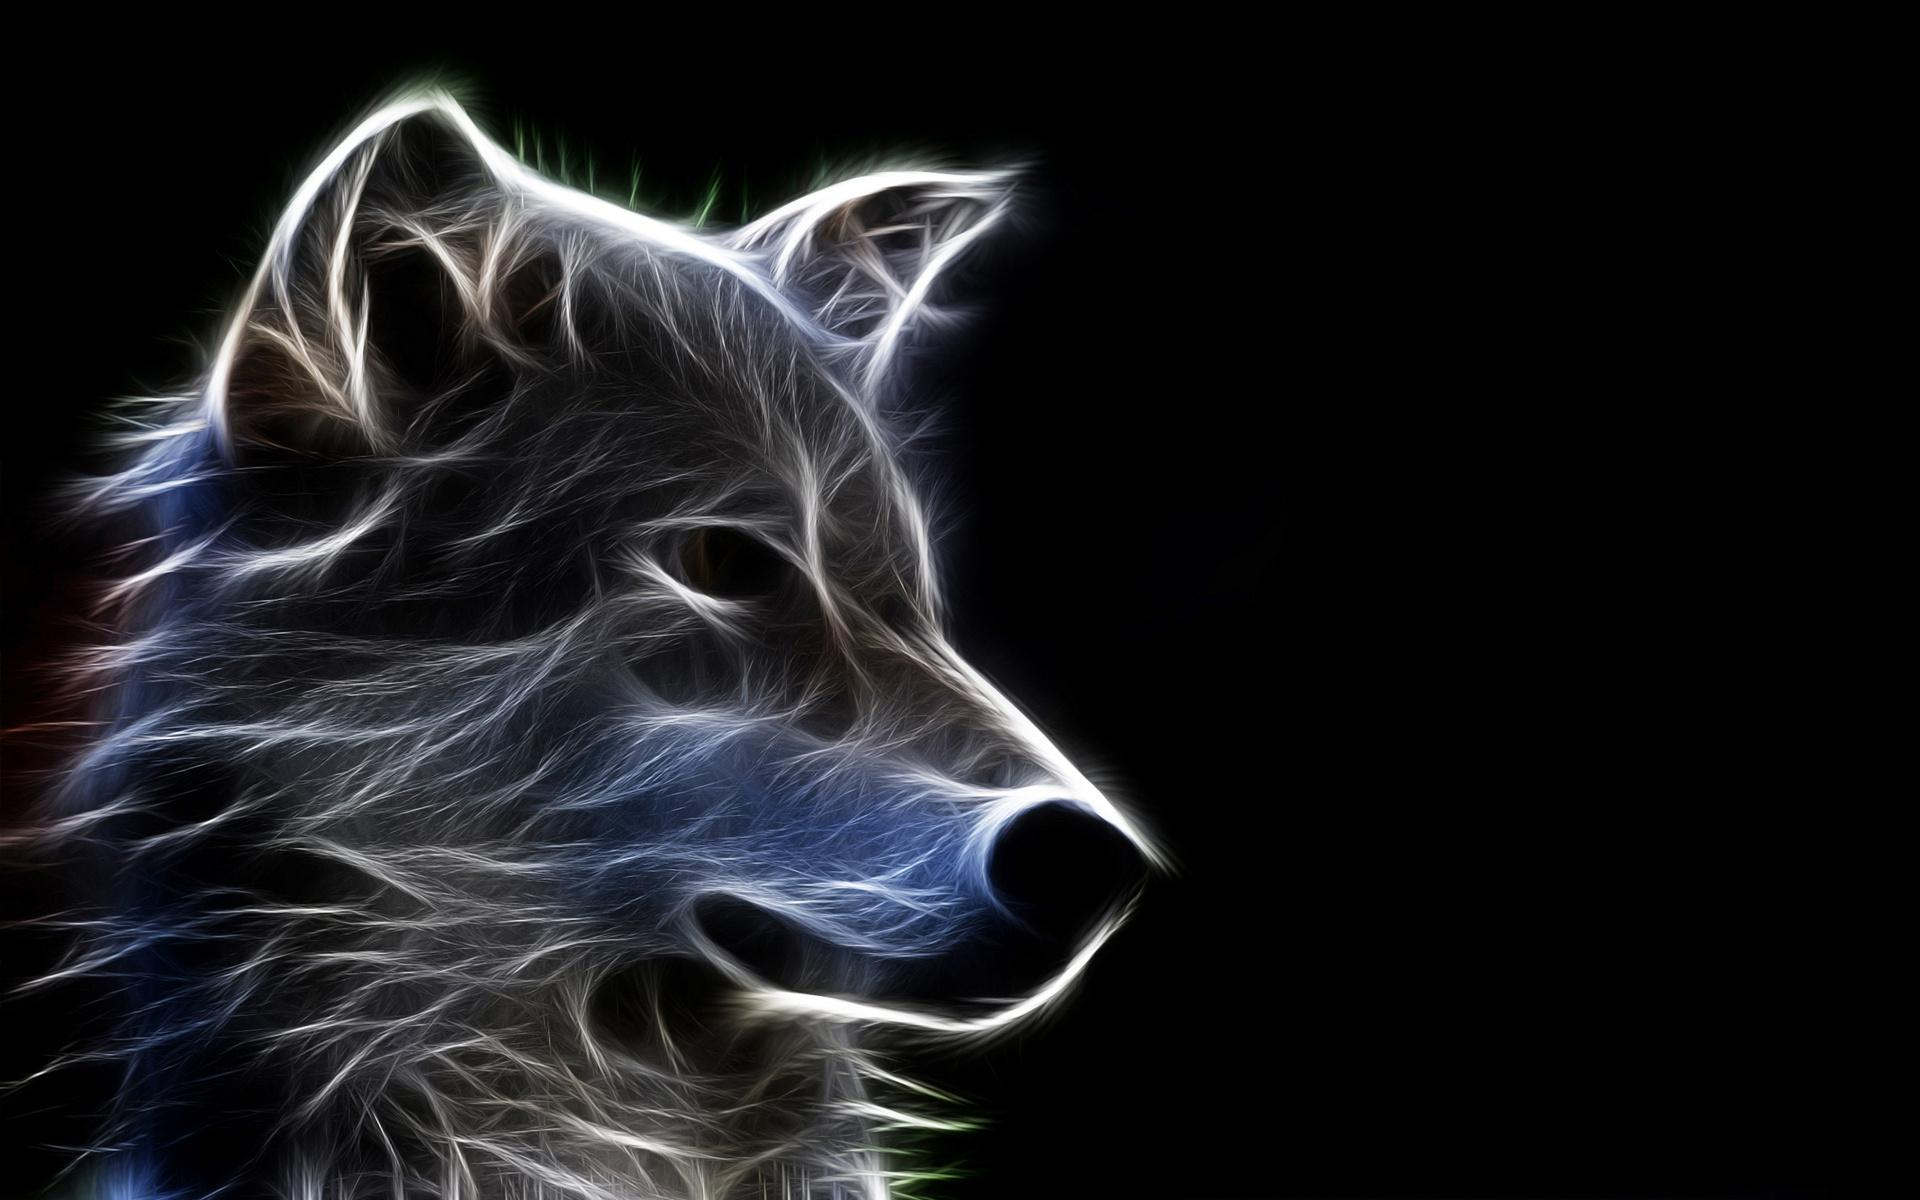 Abstract Wolf Art Wallpaper 1920x1200 9836